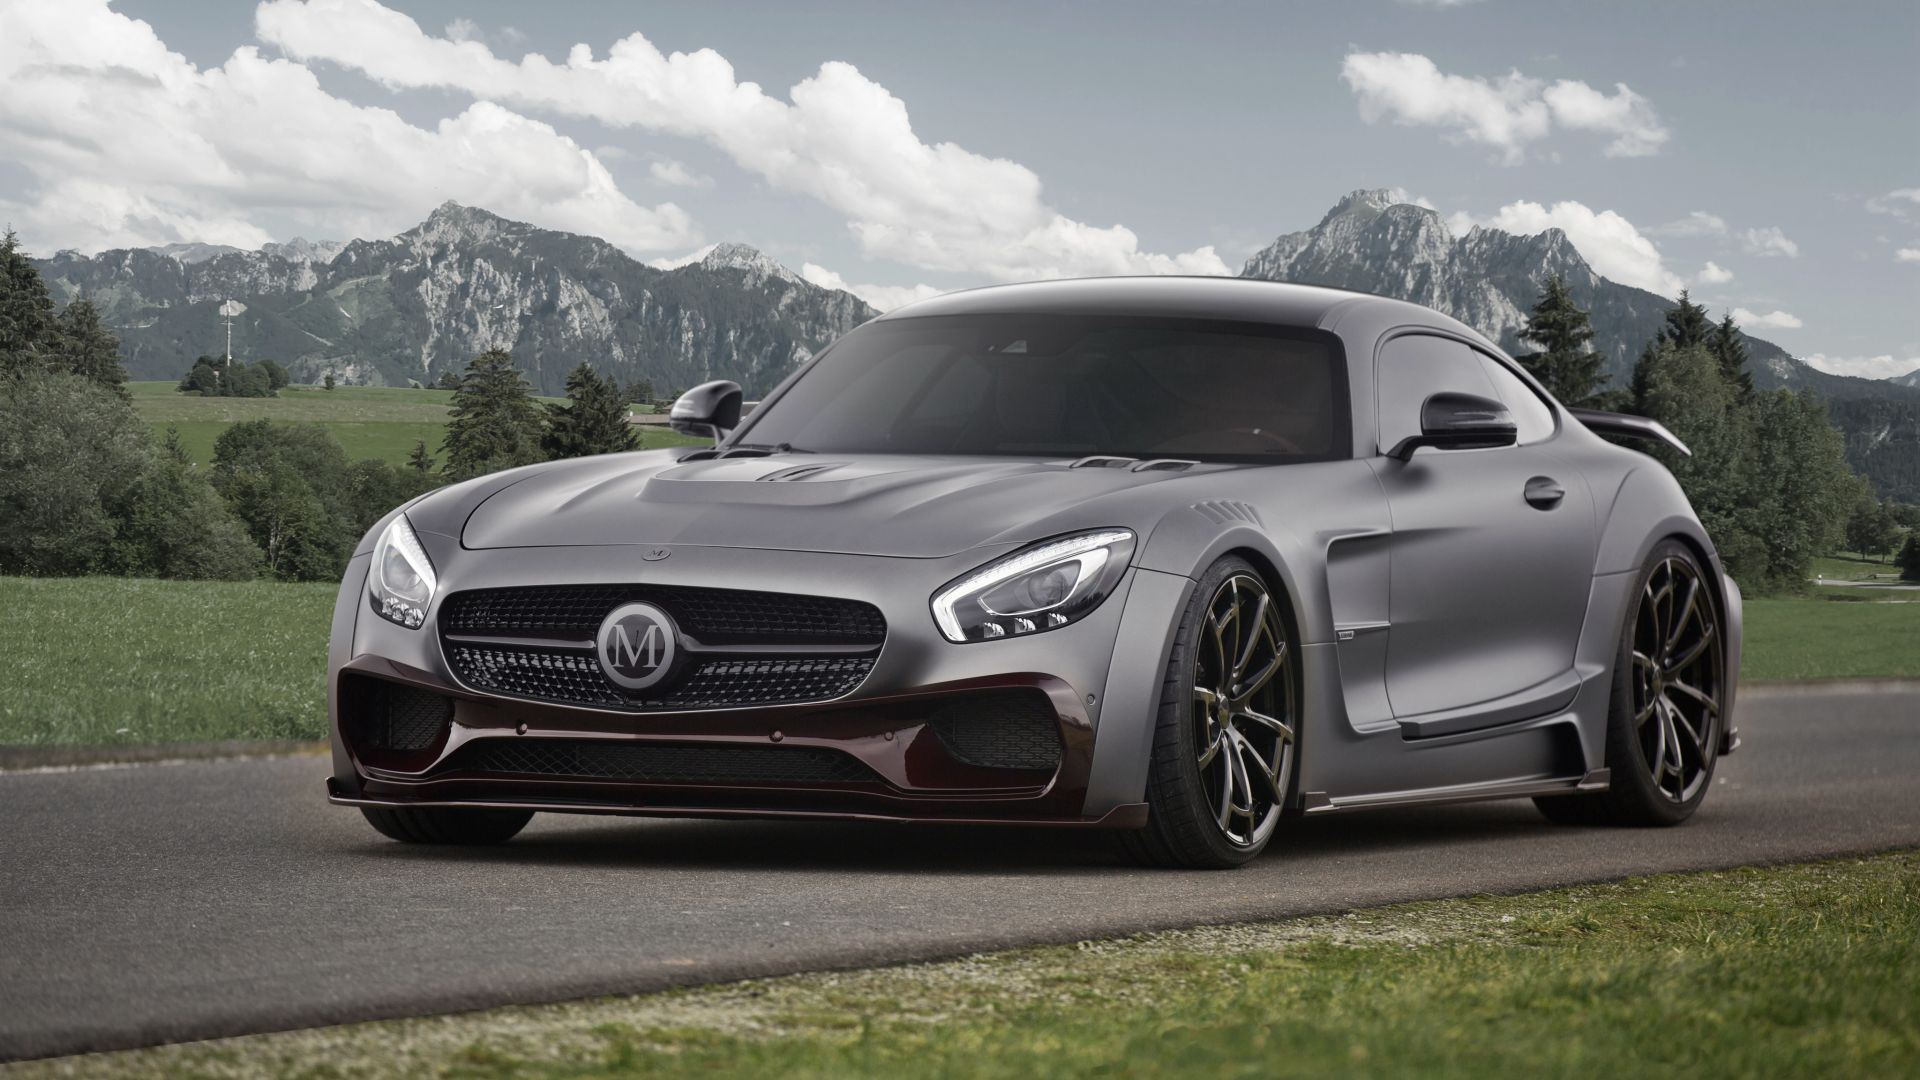 Mansory Mercedes AMG GT S, Coupe, Geneva Auto Show 2016, silver (horizontal)